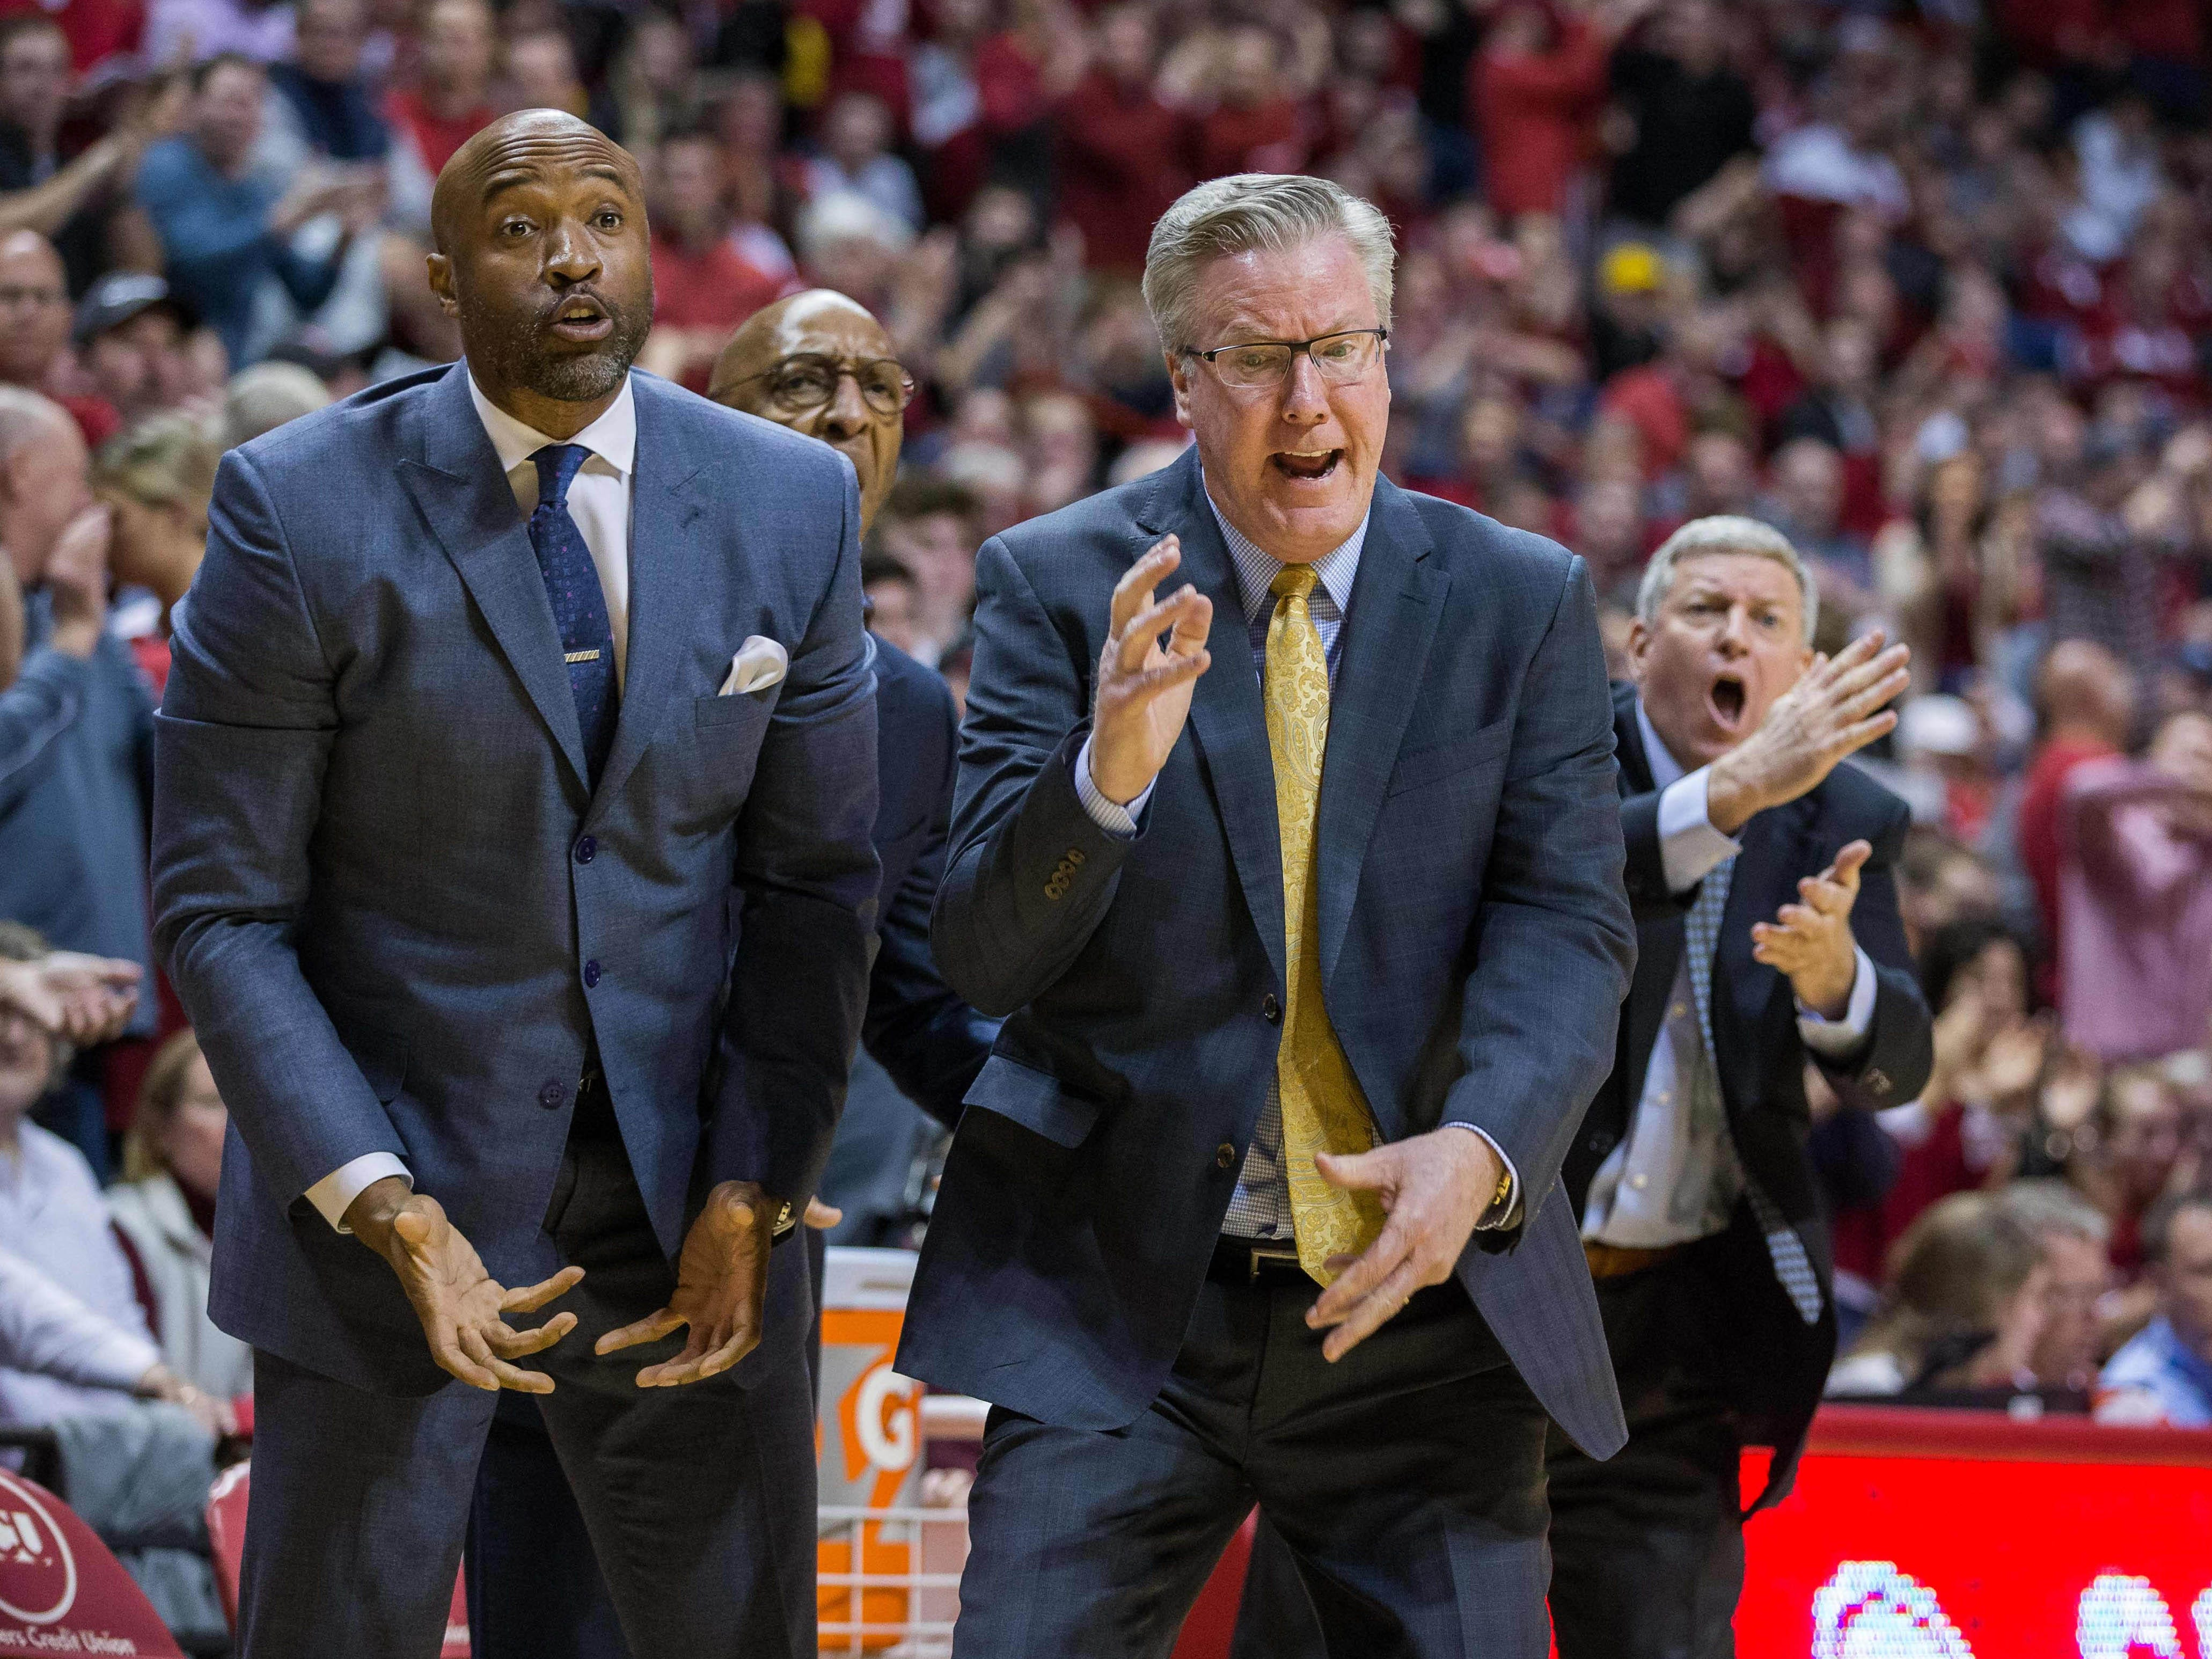 Iowa Hawkeyes head coach Fran McCaffery reacts to a foul on the sideline in the second half against the Indiana Hoosiers at Assembly Hall. Mandatory Credit: Trevor Ruszkowski-USA TODAY Sports